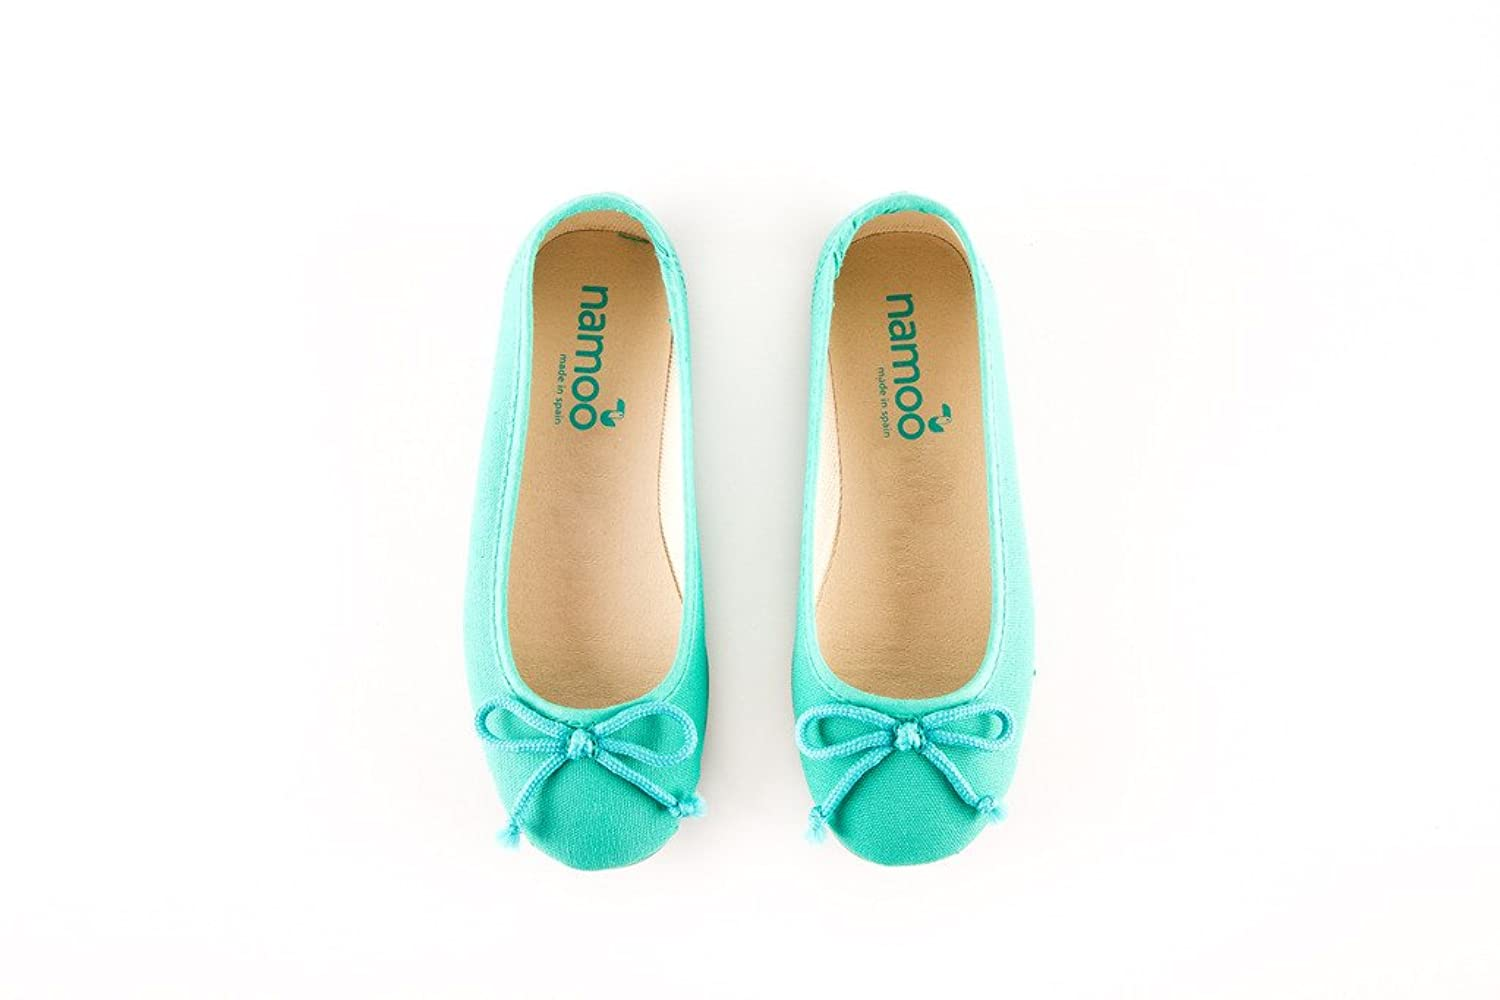 Namoo Ballerina for Girls, Cotton and Rubber Sole, Baby/Toddler/Kid Shoe,  Soft and Resistant: Amazon.ca: Shoes & Handbags